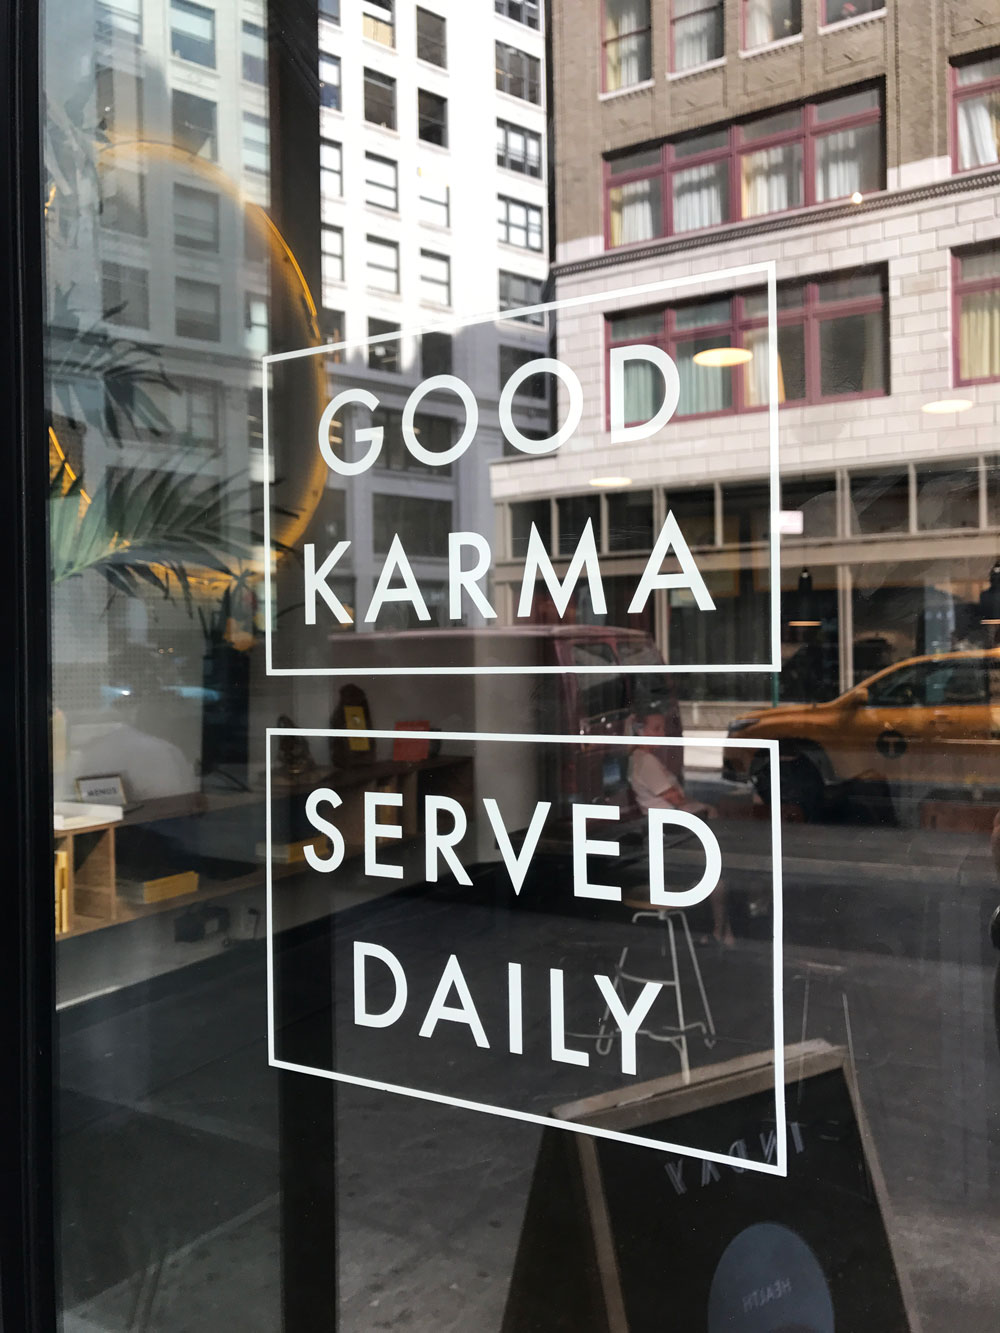 dominick-volini-inday-good-karma-served-daily.jpg